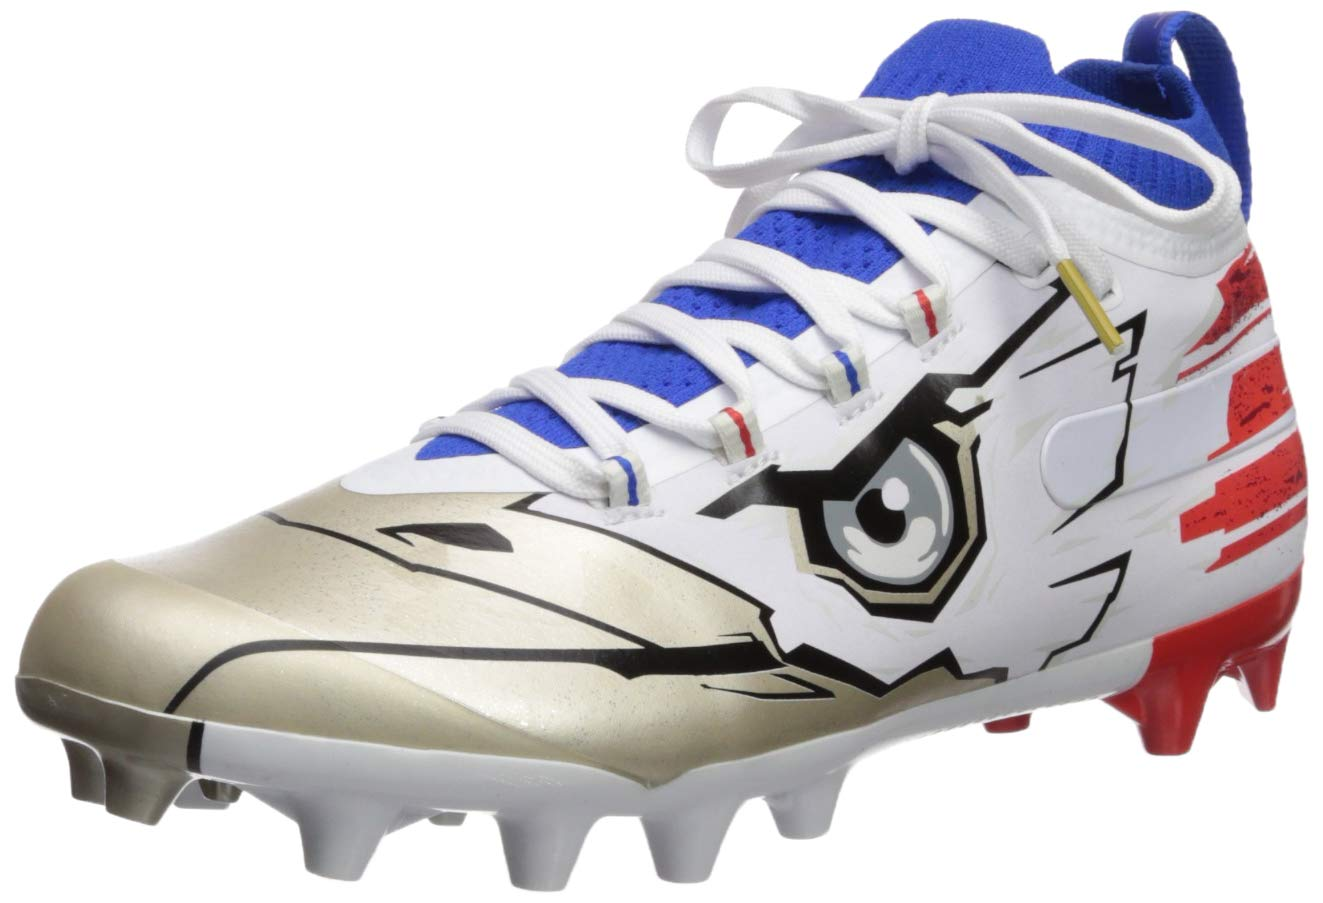 Under Armour Men's Spotlight-Limited Edition Football Shoe Black (002)/Royal 8